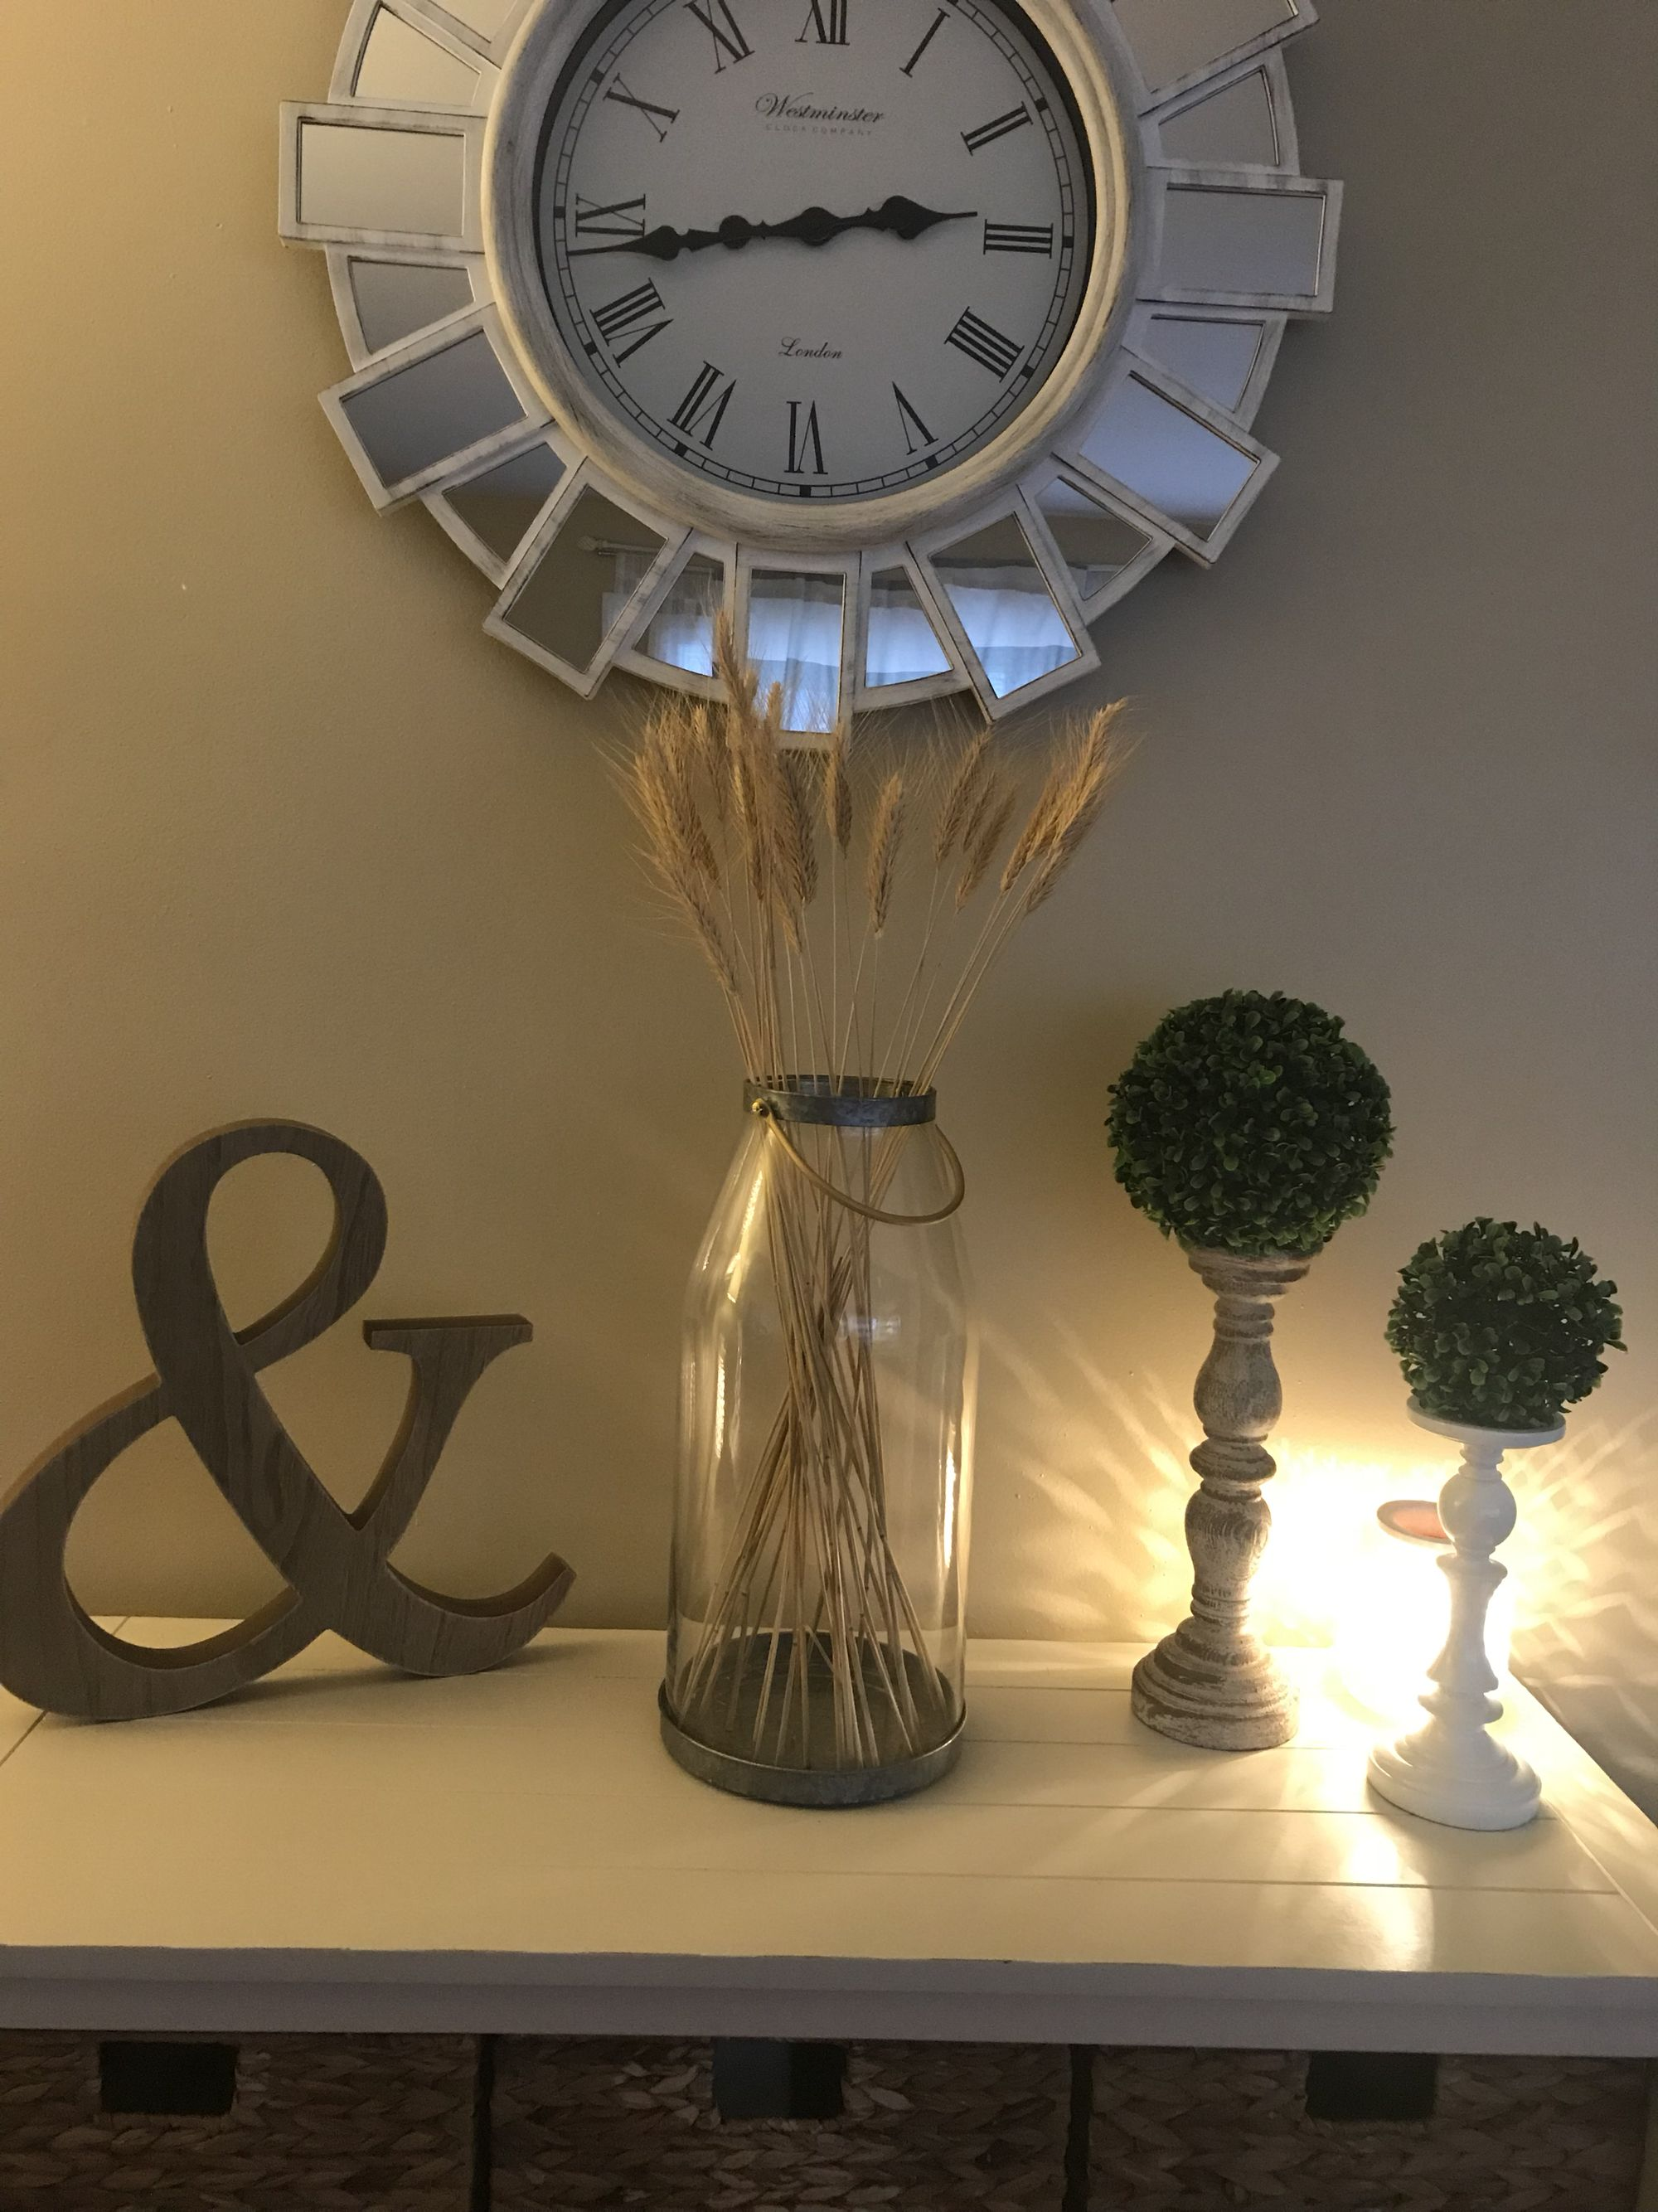 Hobby Lobby decor and Magnolia Farms Large candle holder ... on Hobby Lobby Wall Candle Sconces Wall Candle Holders id=74553